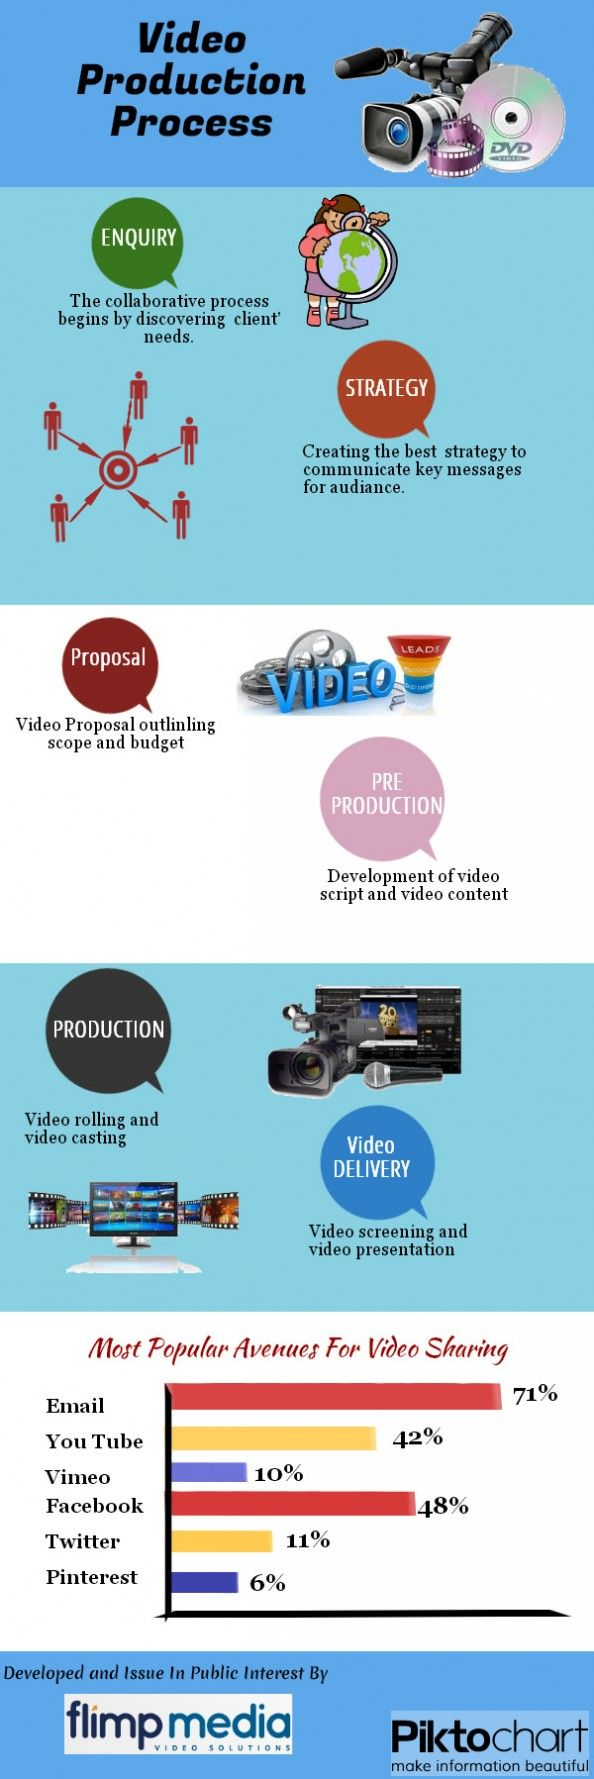 Photon SF Inc. - A creative video production company providing marketing, testimonial, web and corporate video production services in San Francisco and Silicon Valley. #VideoProduction